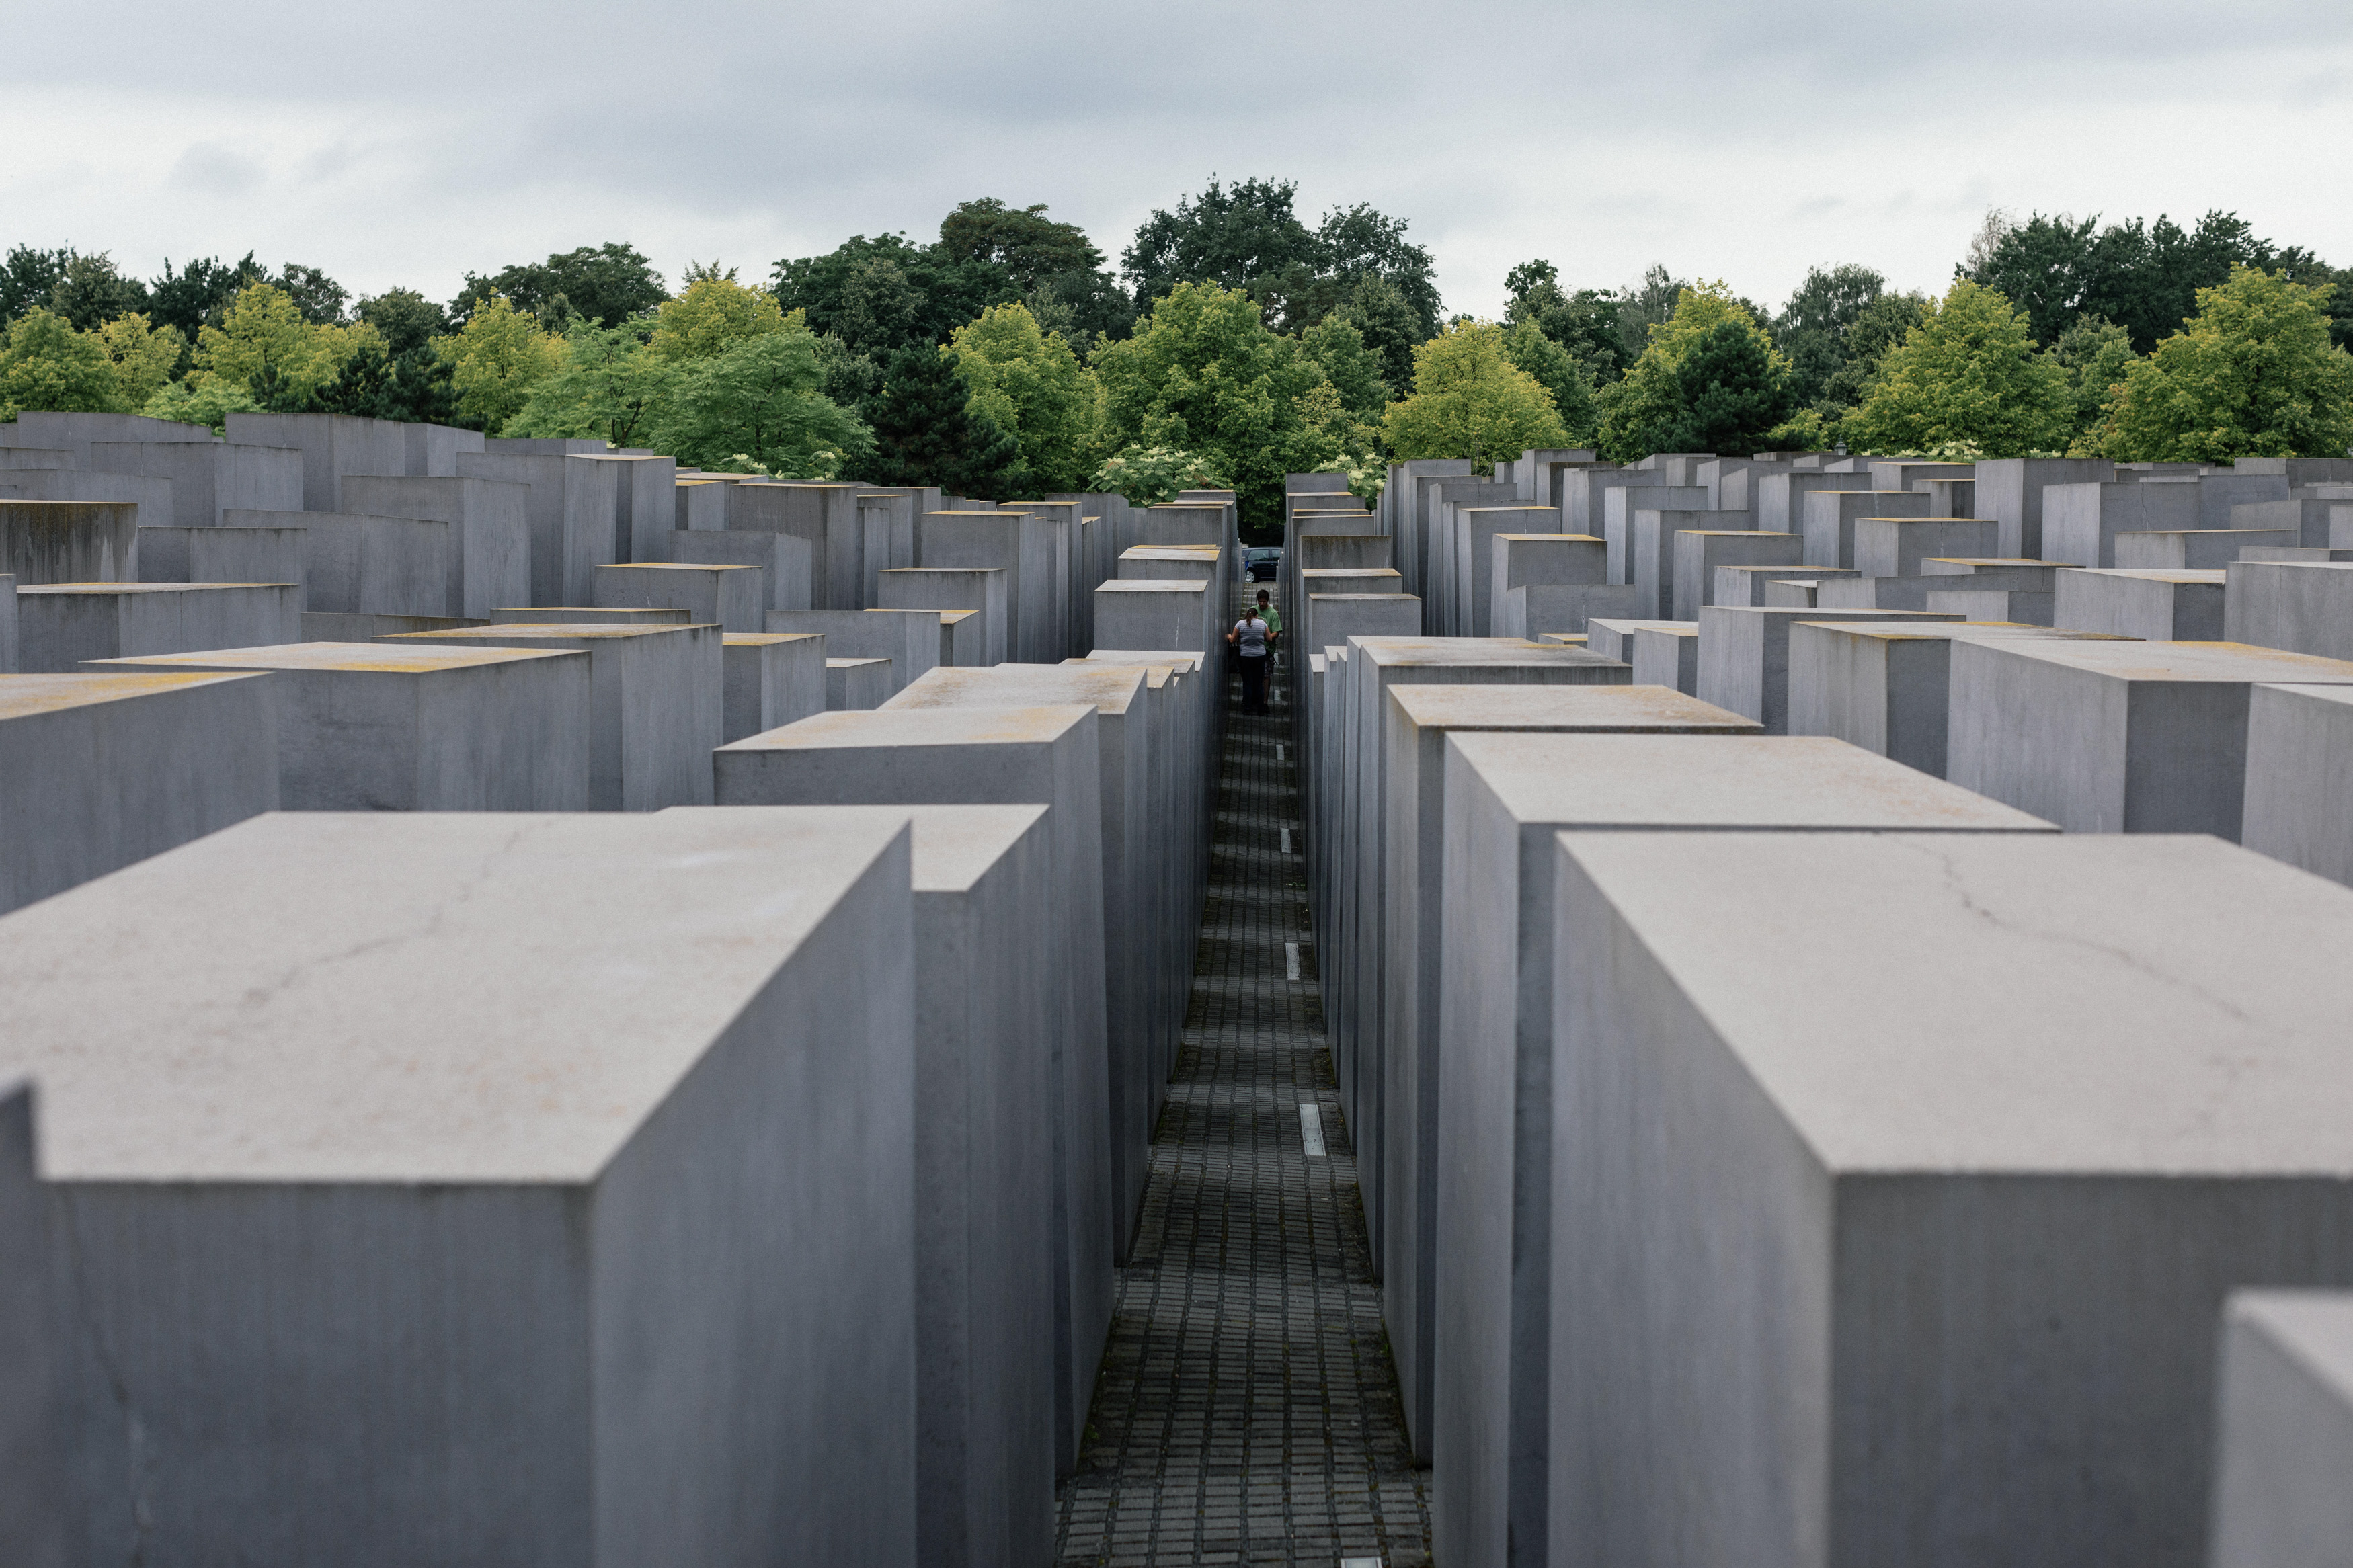 The Memorial to the Murdered Jews of Europe, also known as the Holocaust Memorial, in Berlin, Germany.